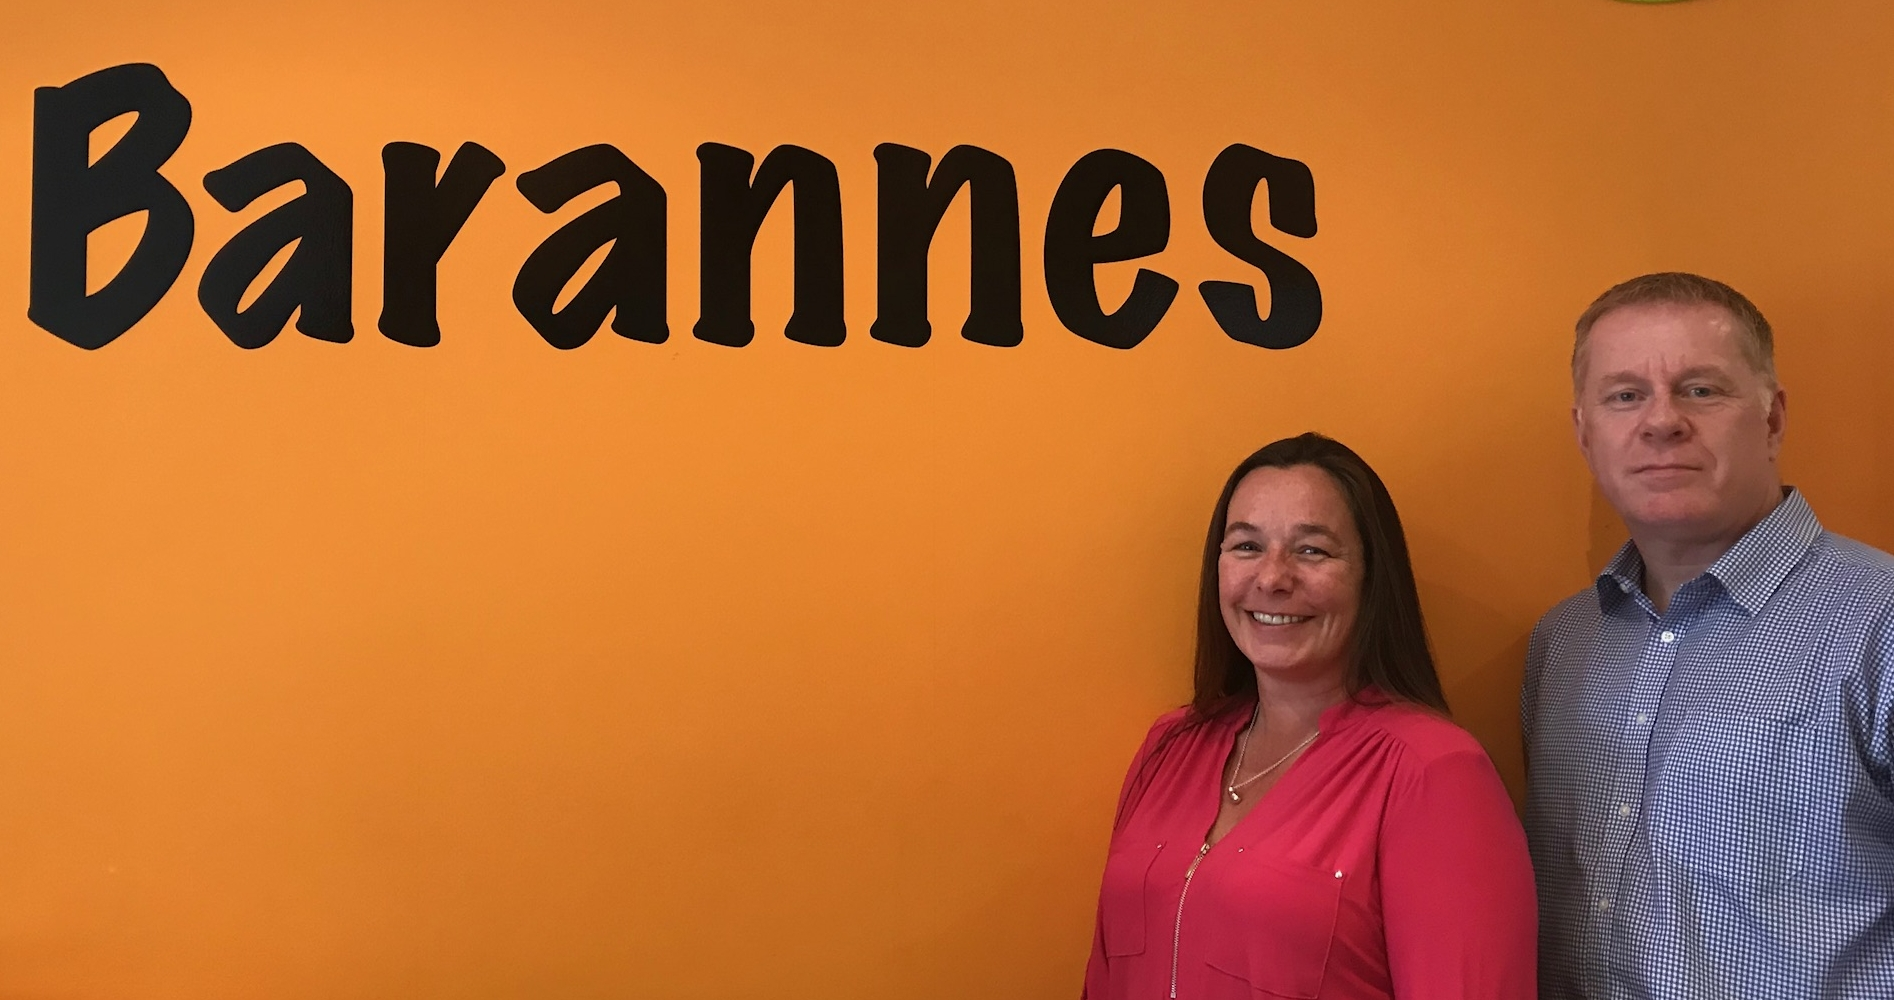 Paula and Ian, co-owners of Barannes